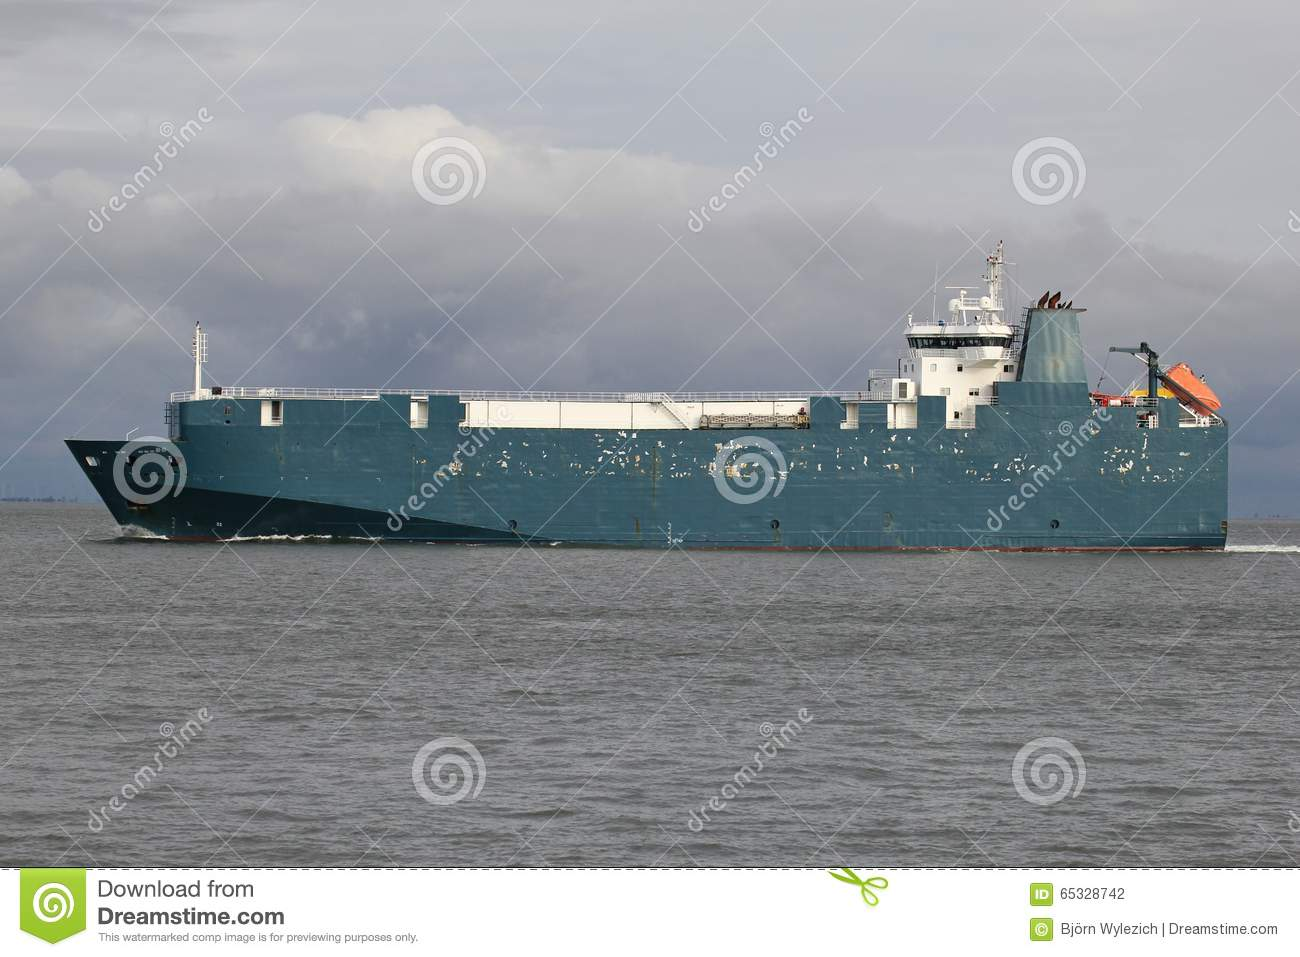 RoRo Vessel stock photo  Image of motor, foreign, trade